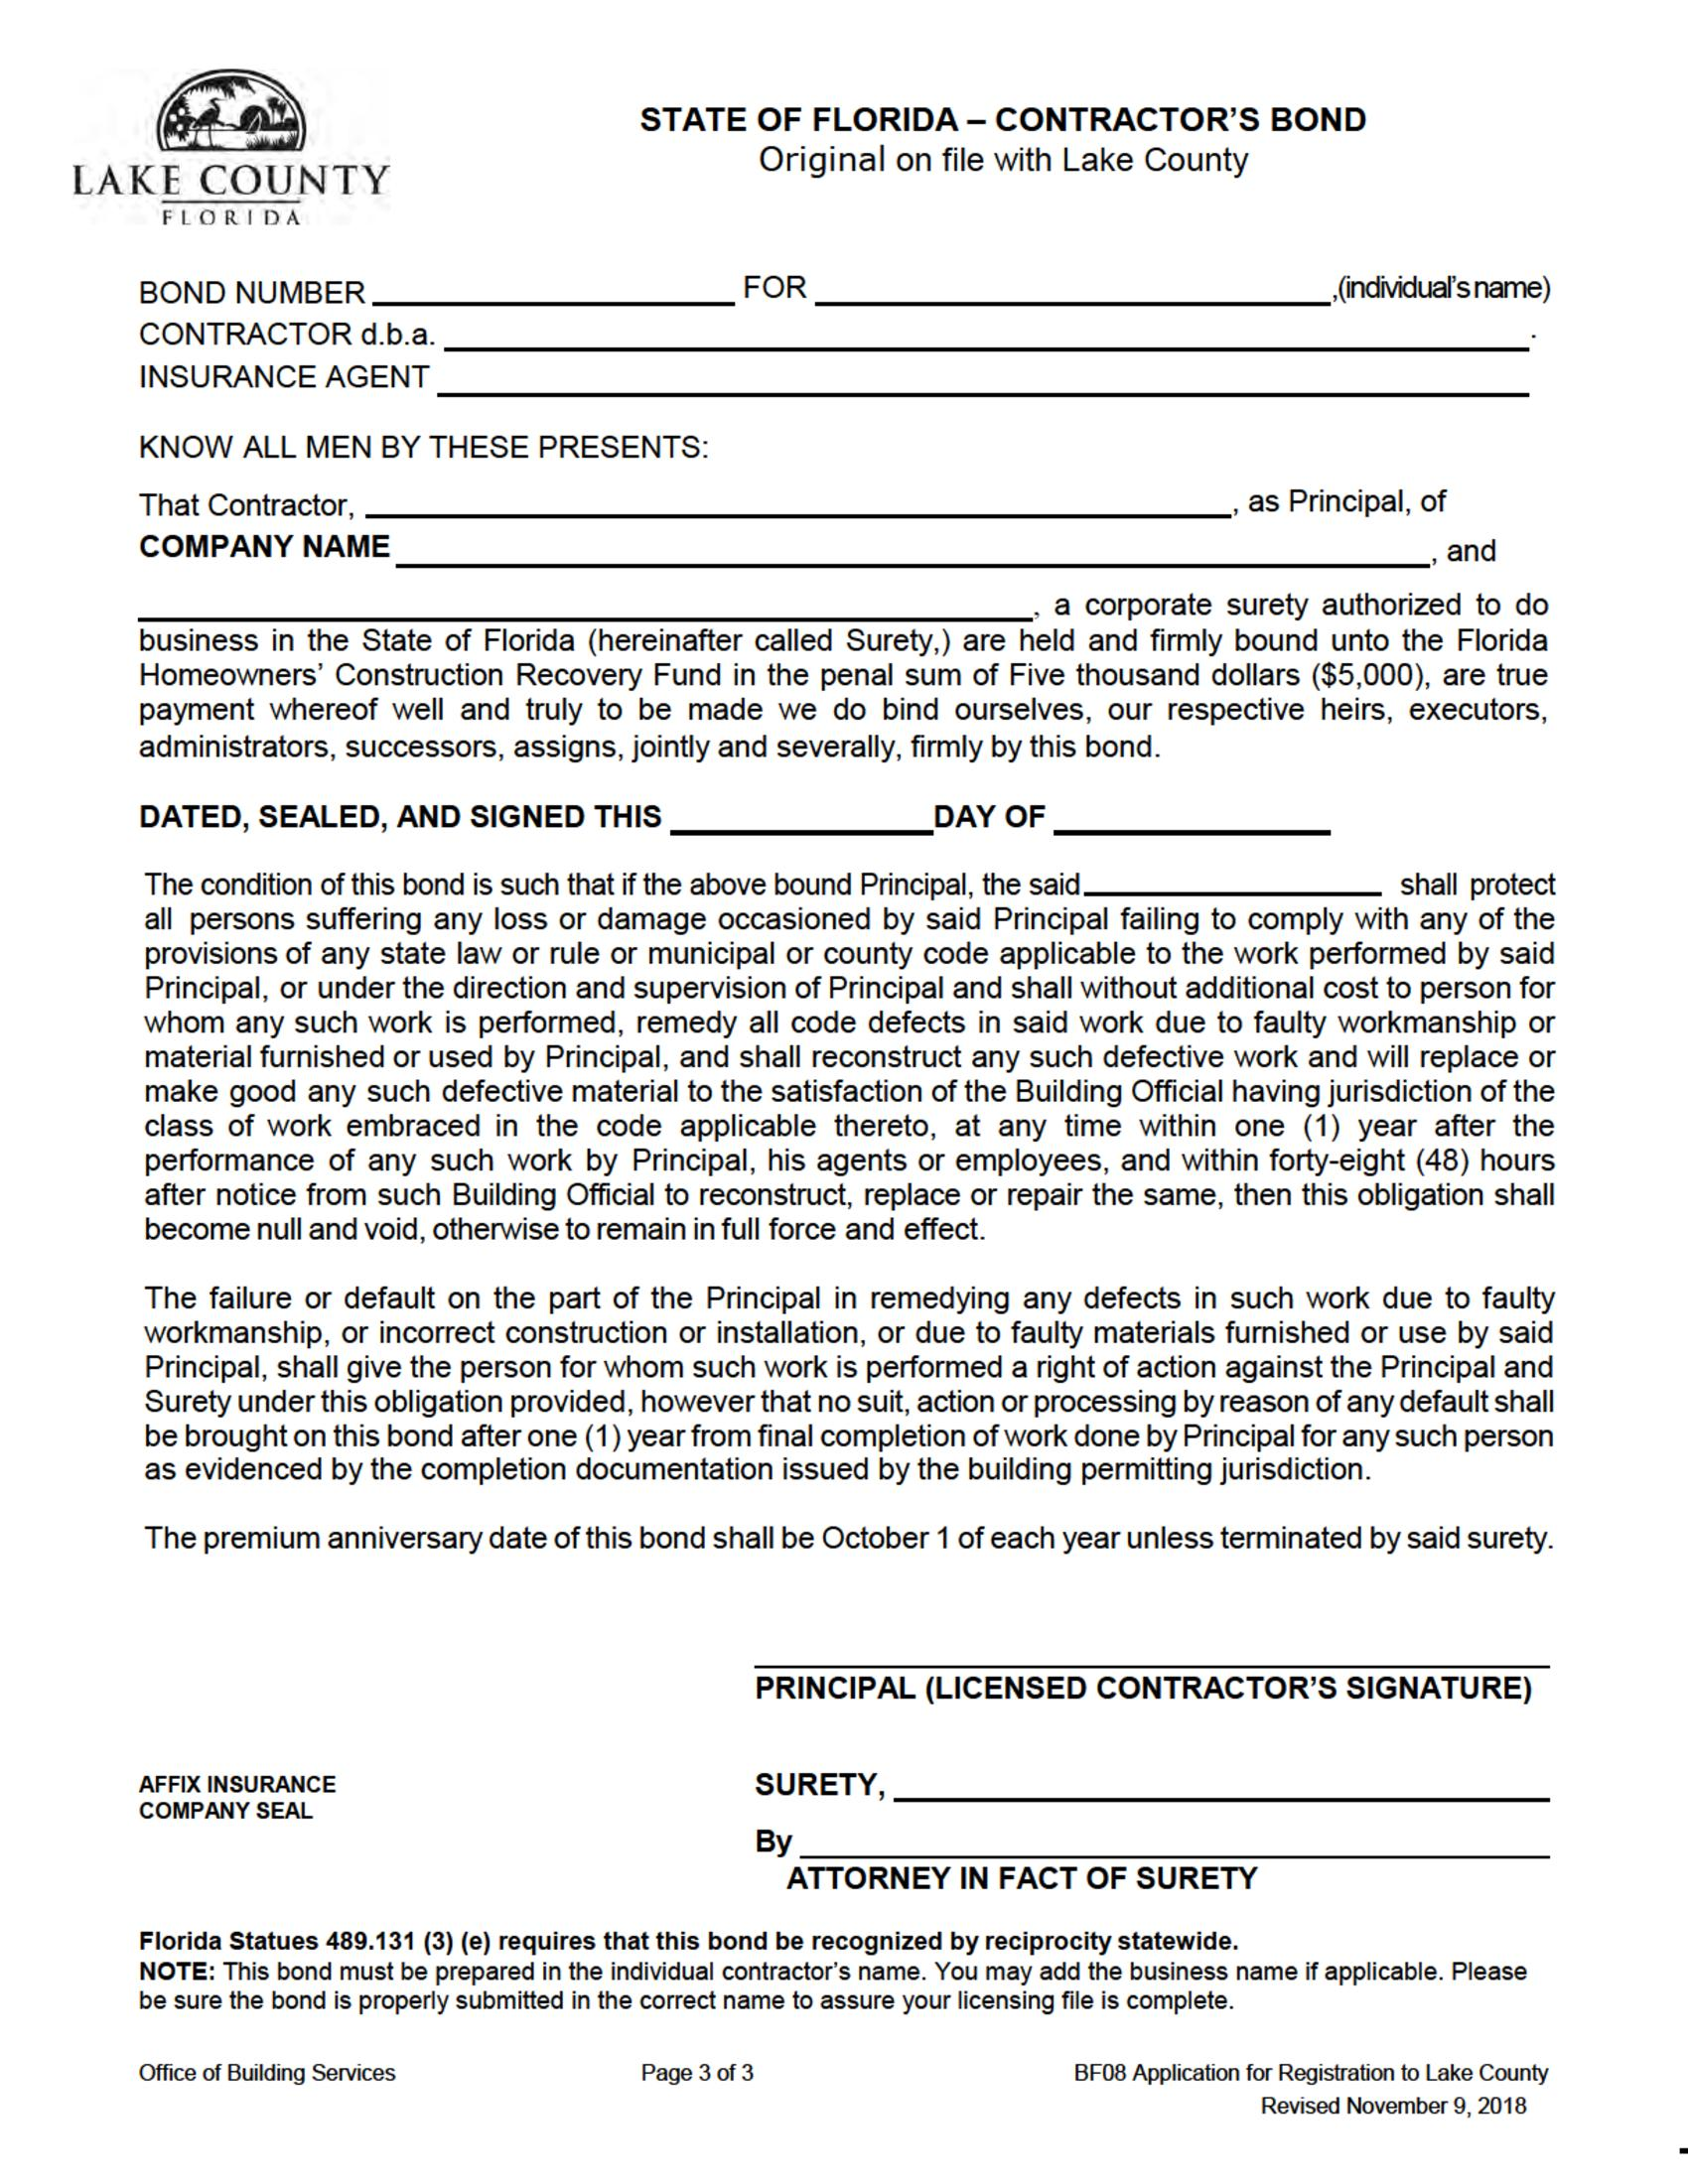 Lake County Contractors License sample image